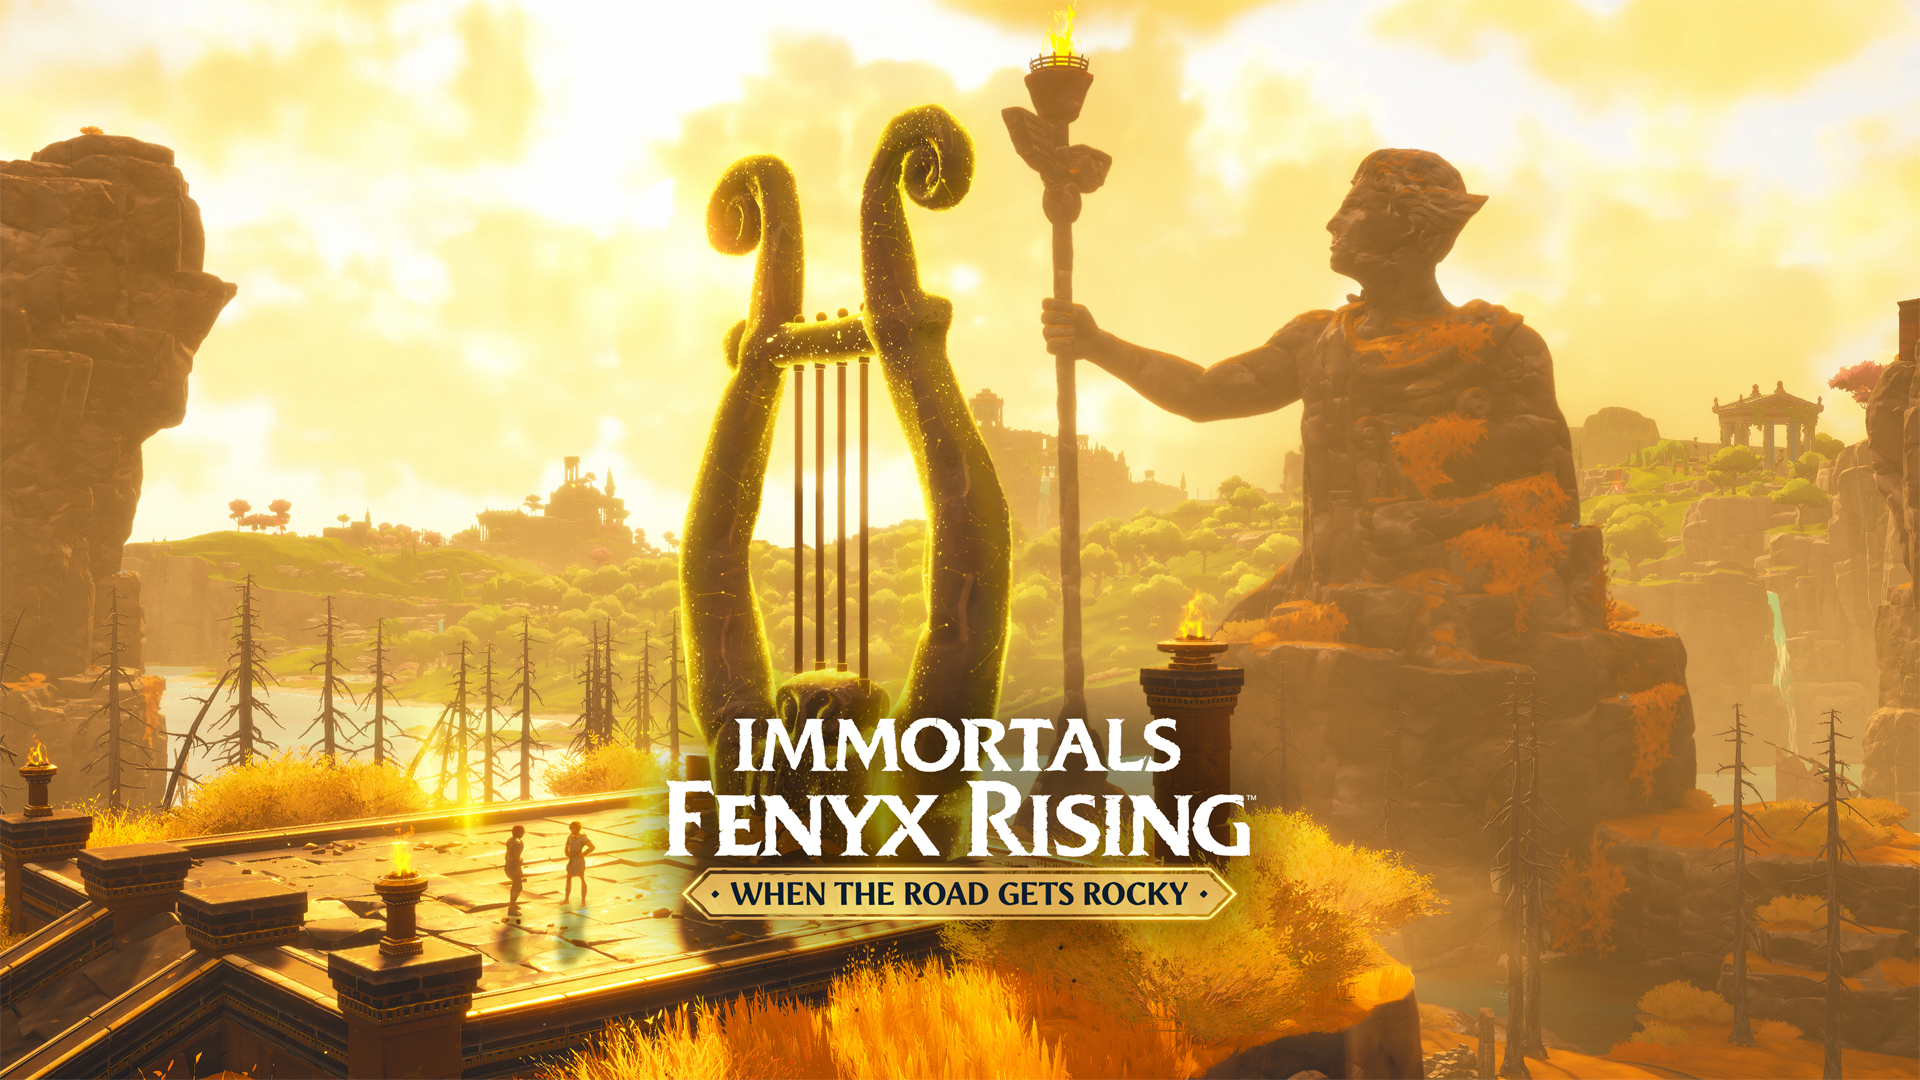 Immortals Fenyx Rising - When The Road Gets Rocky